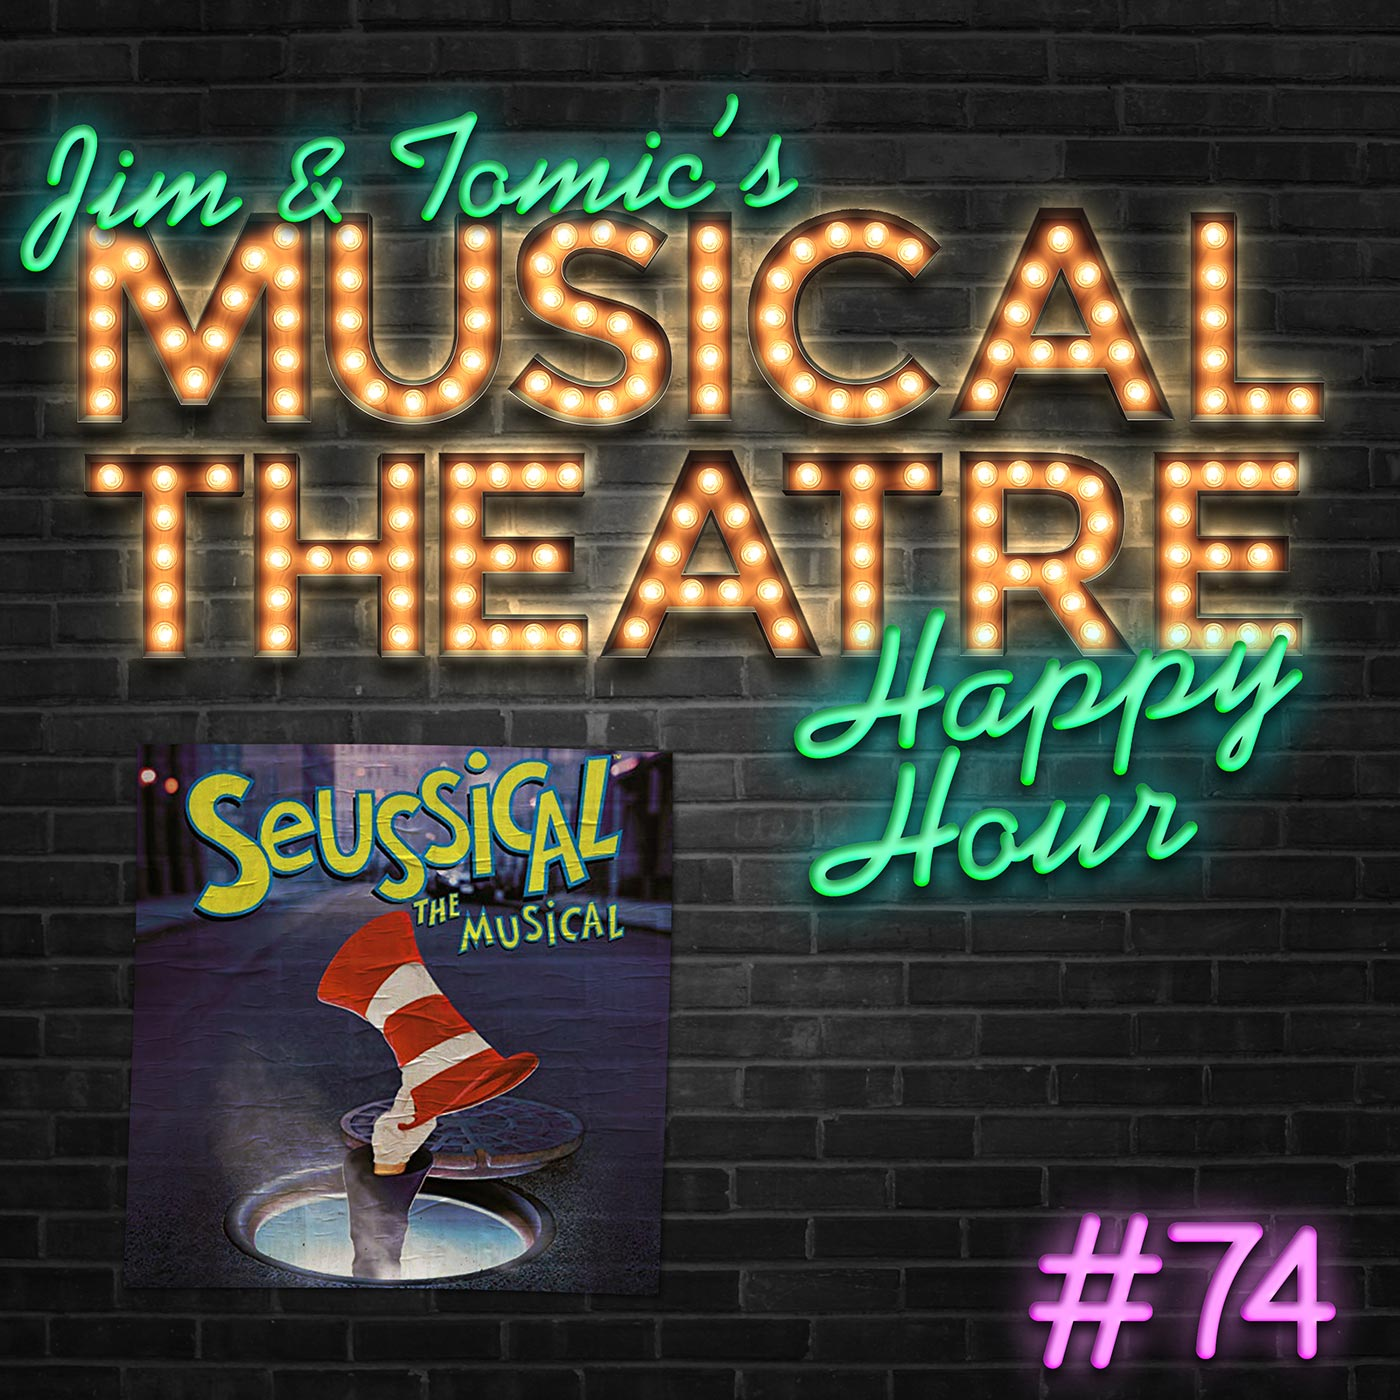 Jim & Tomic Ep 74 SEUSSICAL the Musical